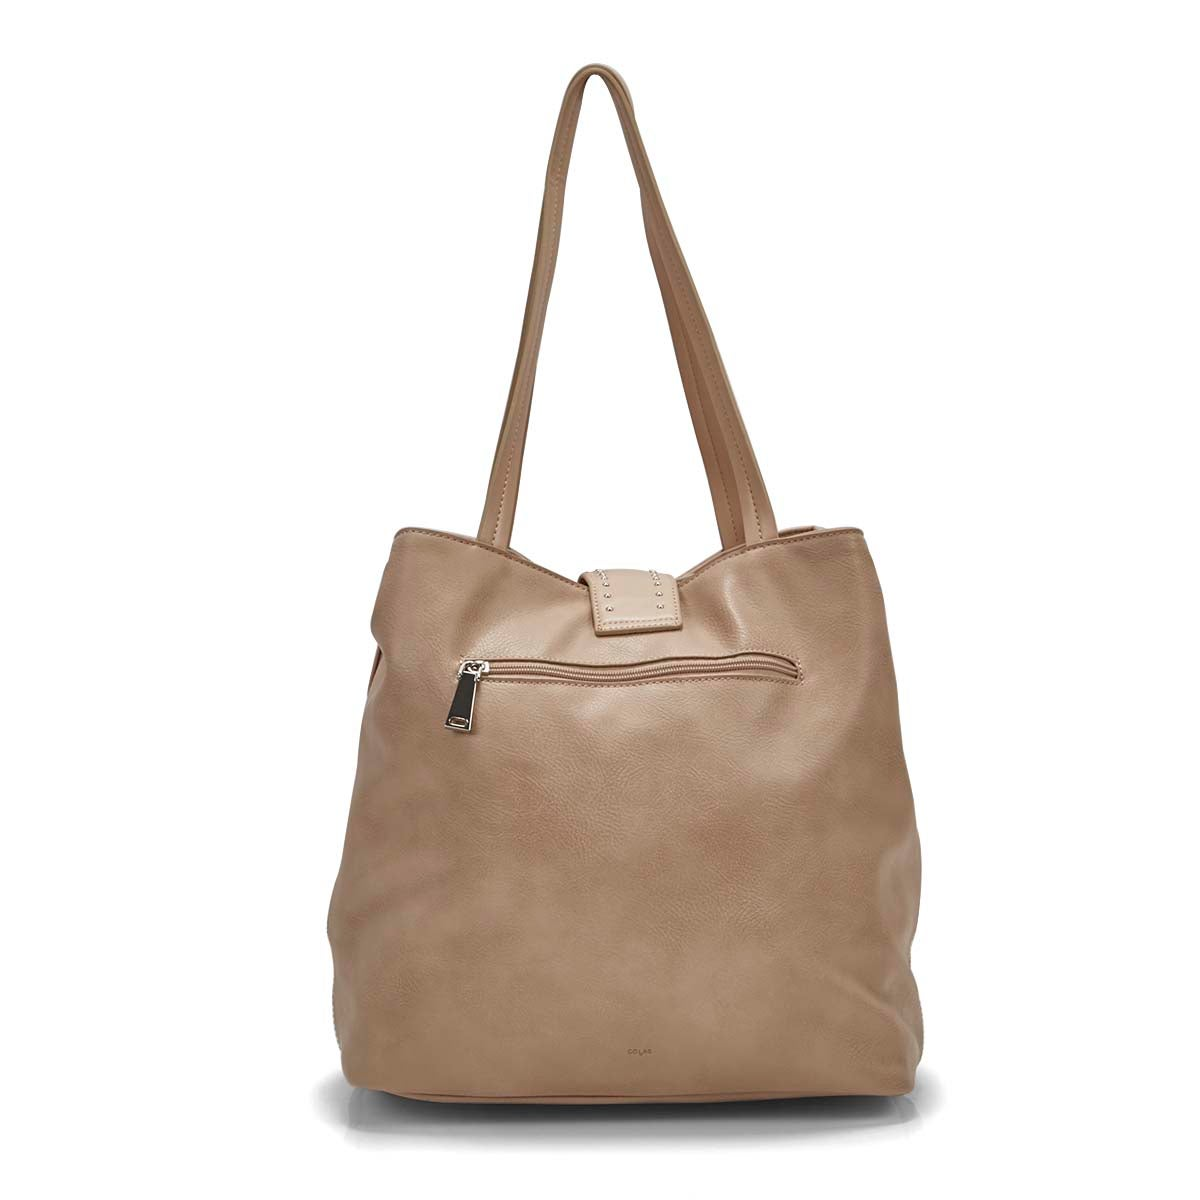 Lds Daisy baked blush tote bag